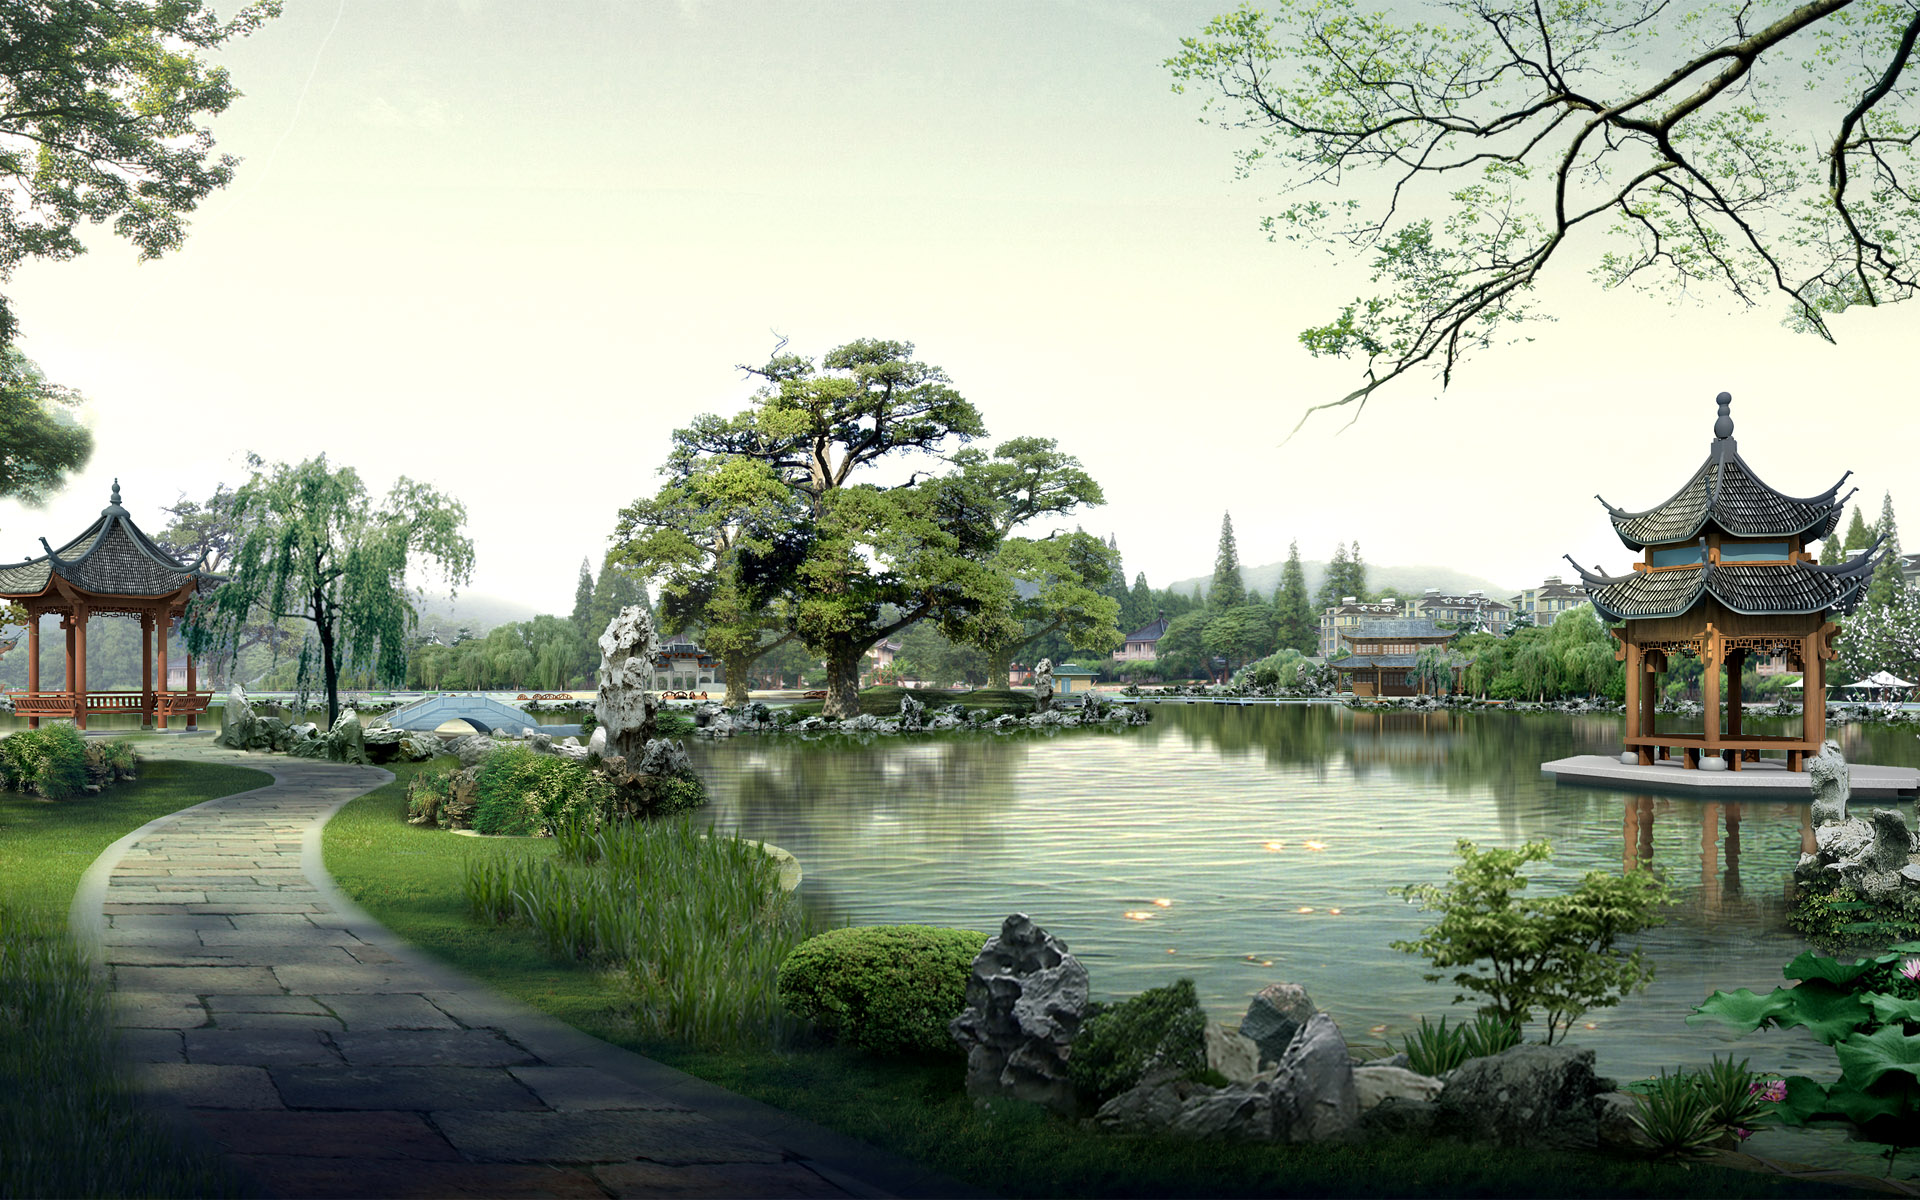 Best Japan Landscape Wallpaper Android Wallpaper with 1920x1200 1920x1200